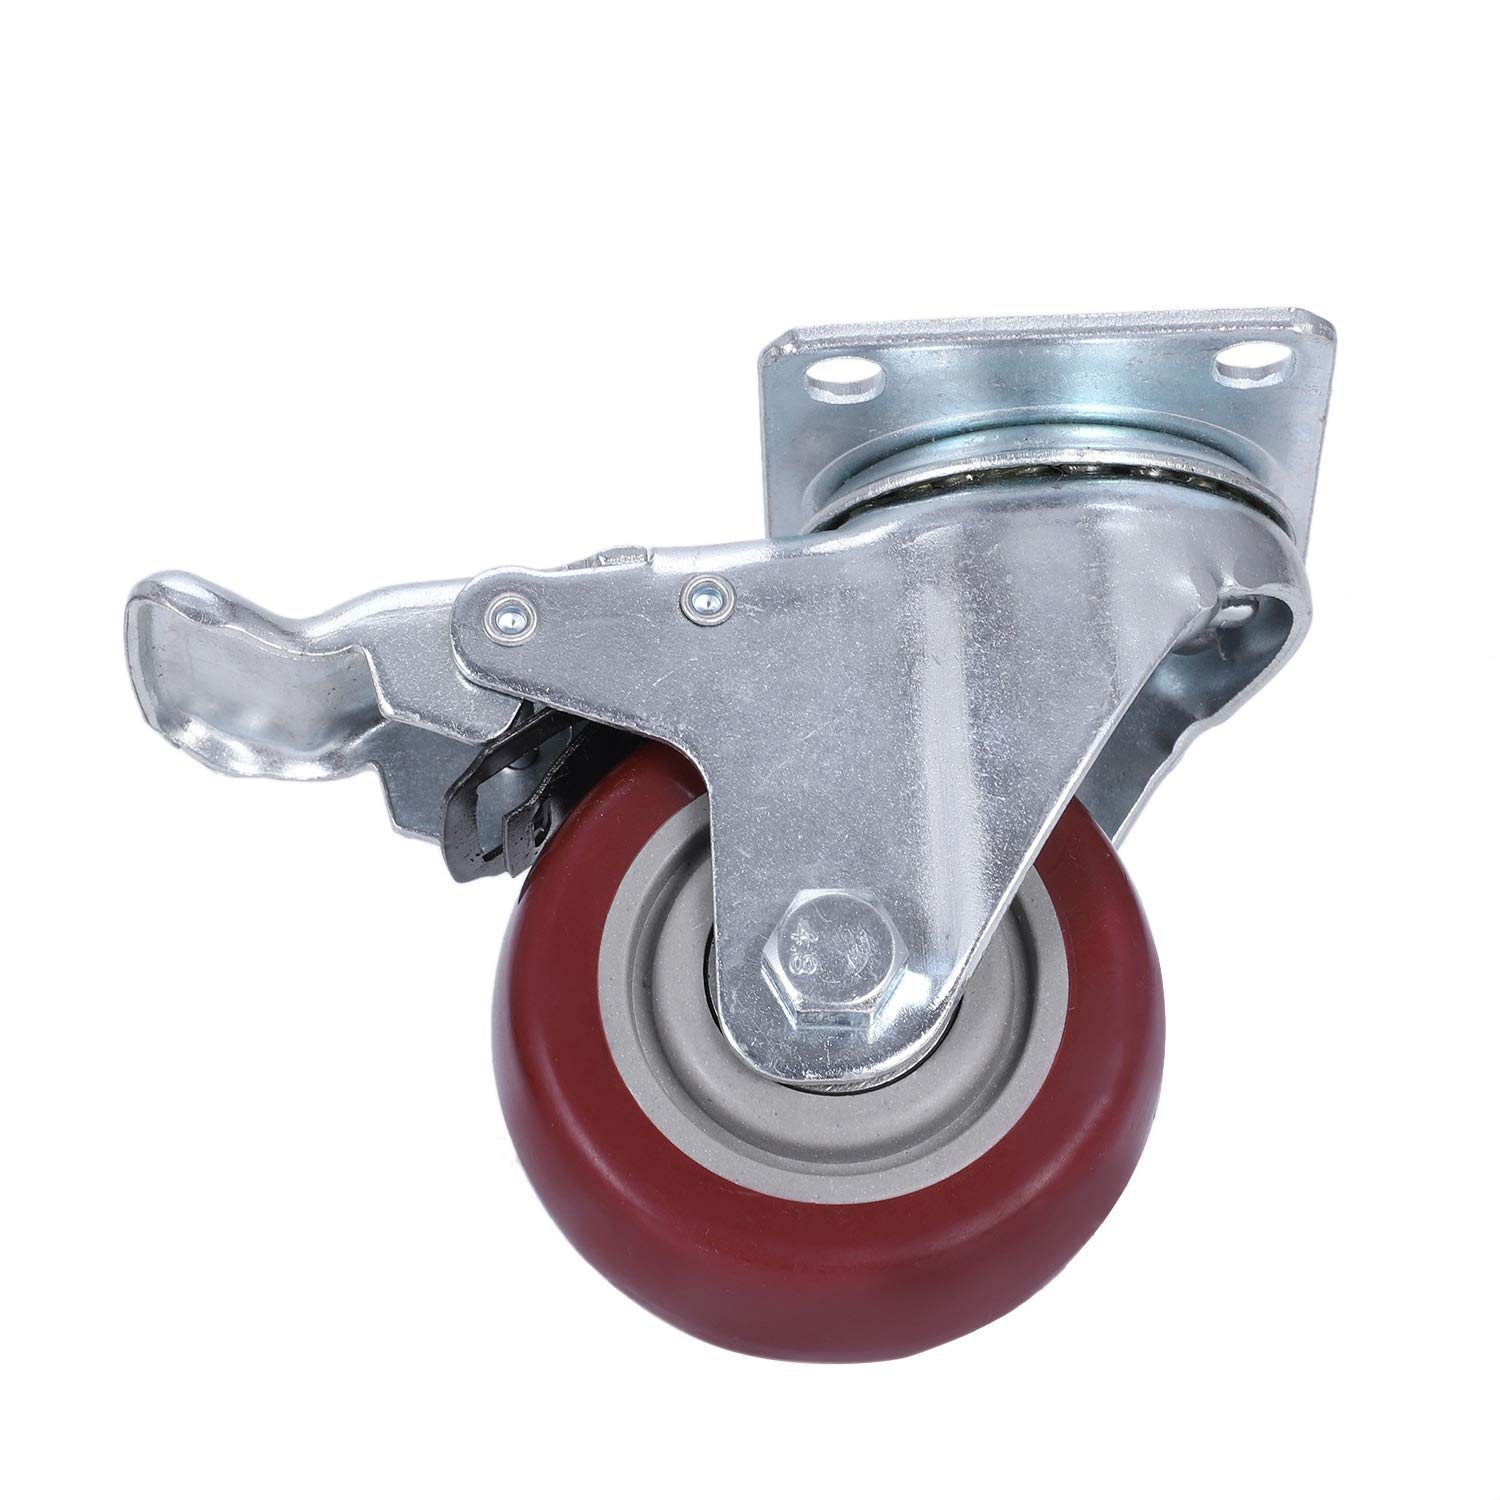 3 inch with Brake SNOWINSPRING 4 Pack Caster Wheels Swivel Plate with Brake On Red Polyurethane Wheels